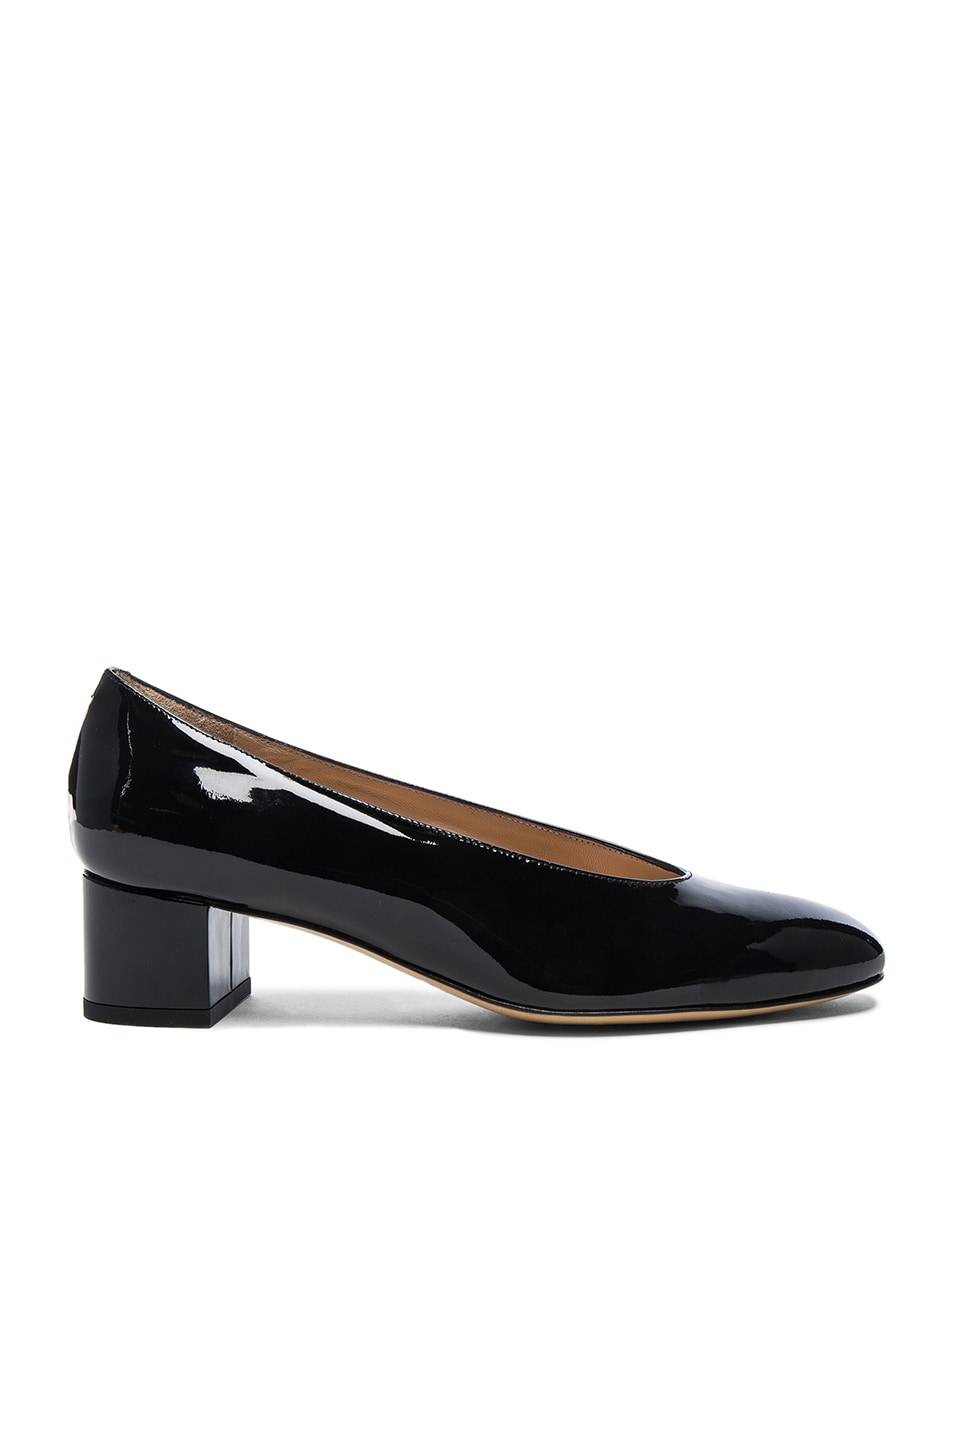 0fbeb22a667 Image 1 of Mansur Gavriel Patent Leather Ballerina Pumps in Black